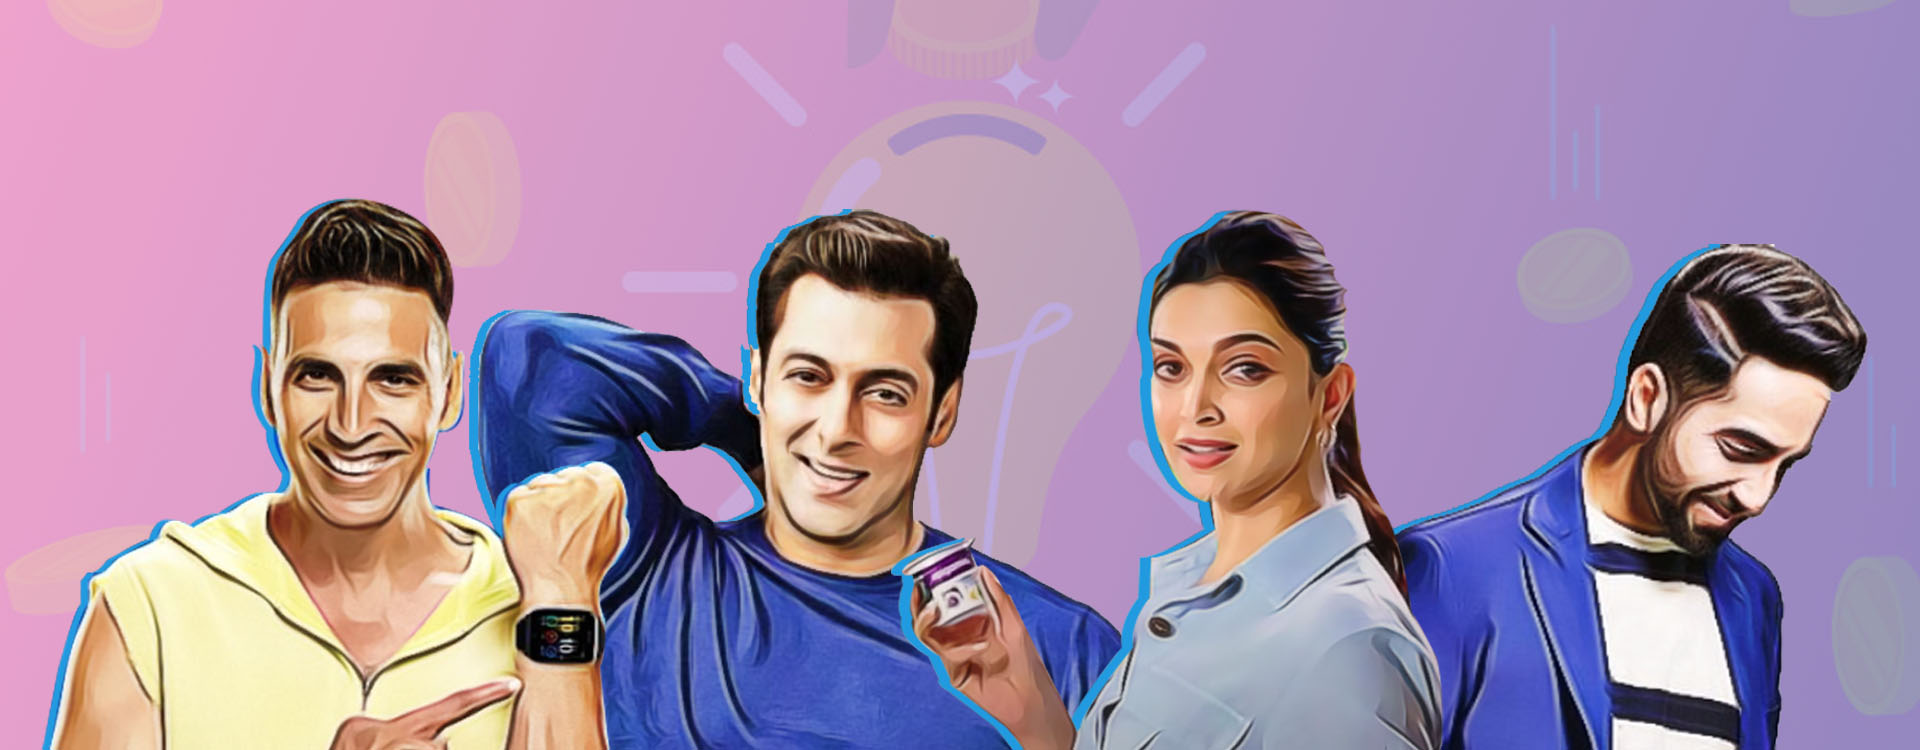 Startups are using the bollywood biggies image to maximise reach and attain a top of the mind recall.